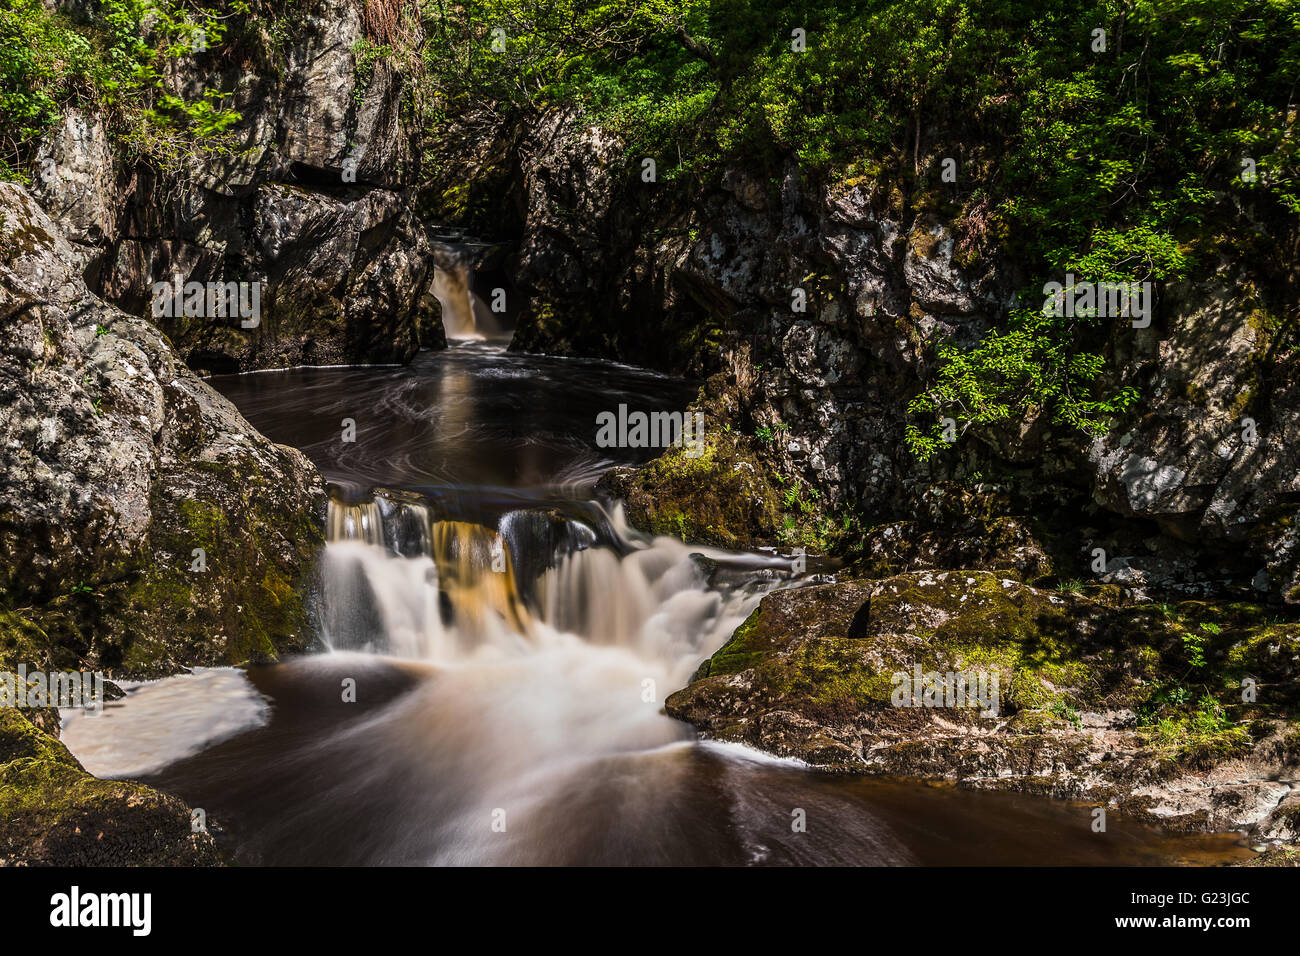 Water flows out of a circular pool at the Snowfalls cascade along the Ingleton waterfalls trail in North Yorkshire. - Stock Image